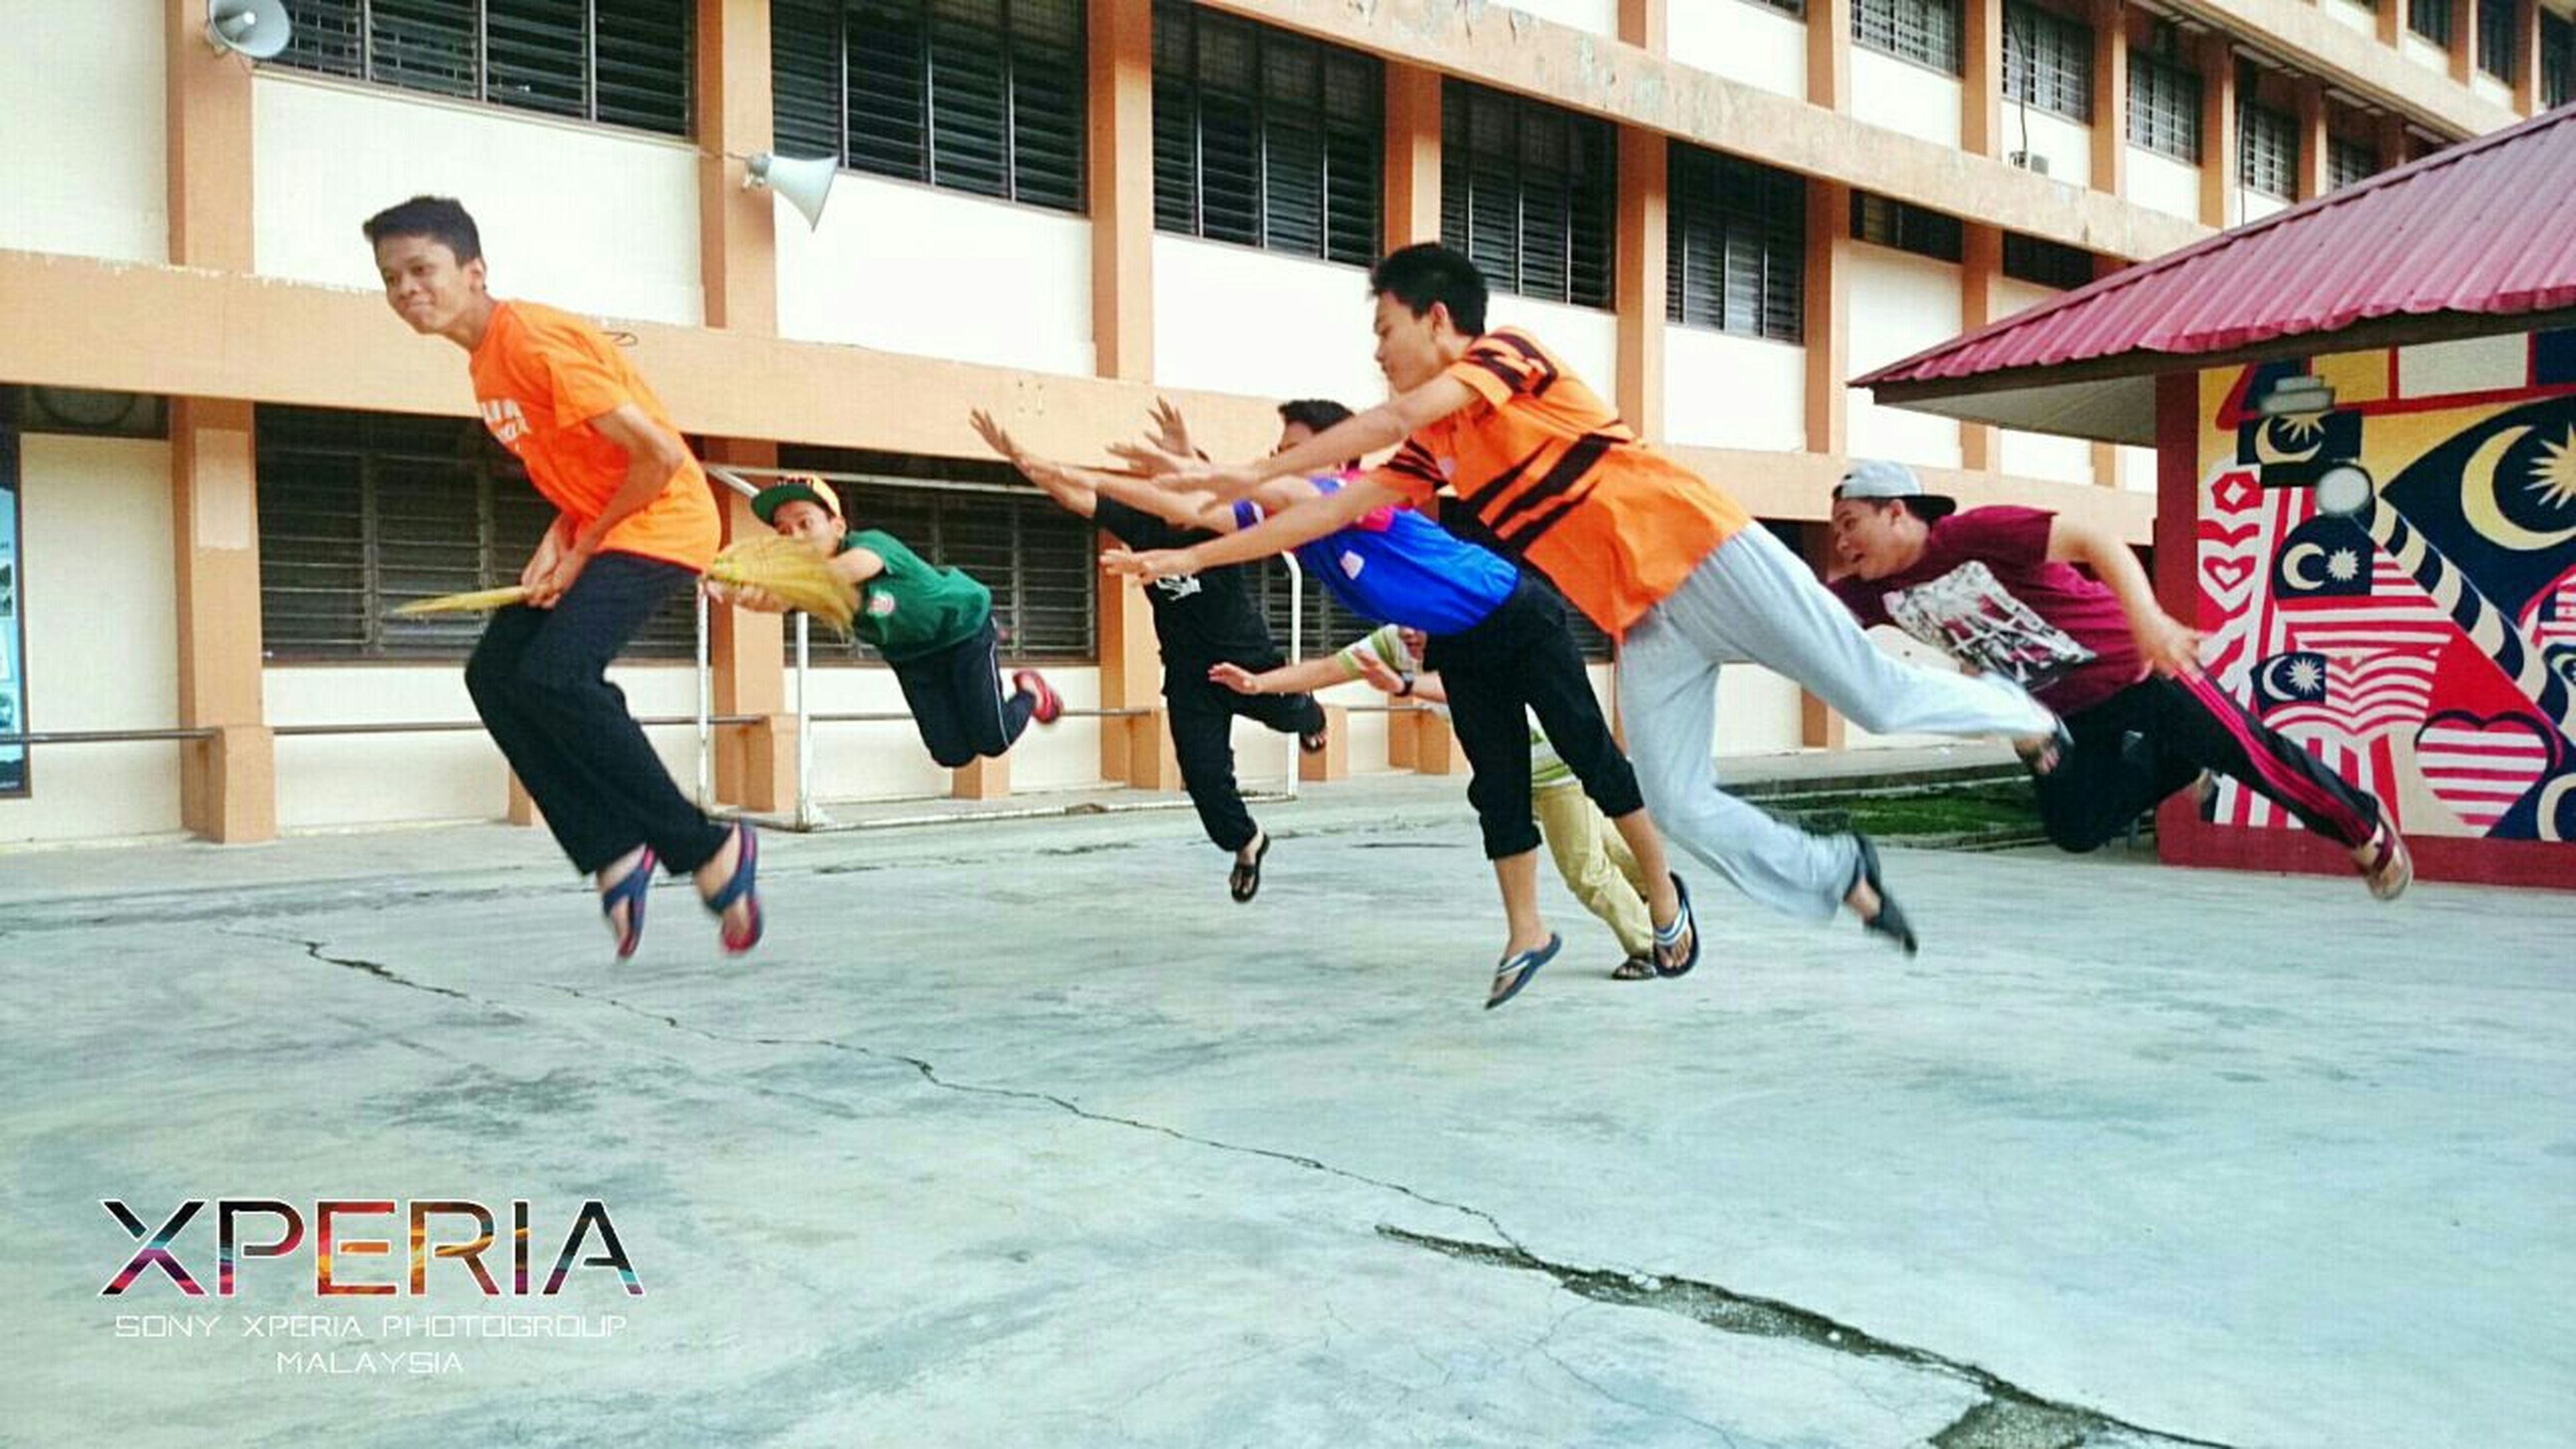 full length, lifestyles, leisure activity, building exterior, built structure, architecture, jumping, mid-air, casual clothing, happiness, men, fun, person, enjoyment, togetherness, skill, motion, young adult